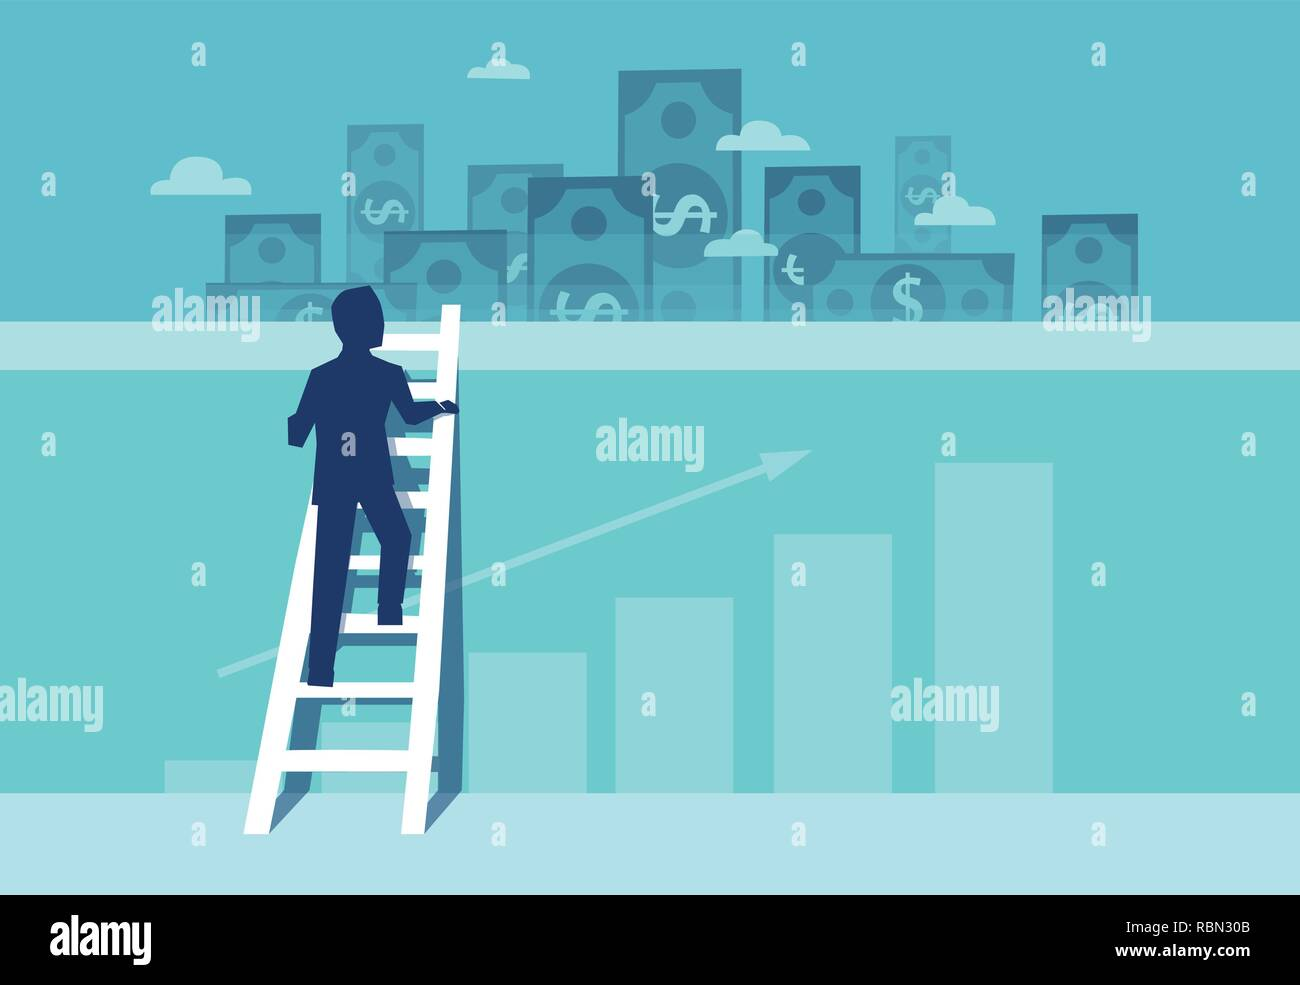 Vector of a challenged businessman climbing up the wall on a ladder to see financial real estate opportunities - Stock Vector